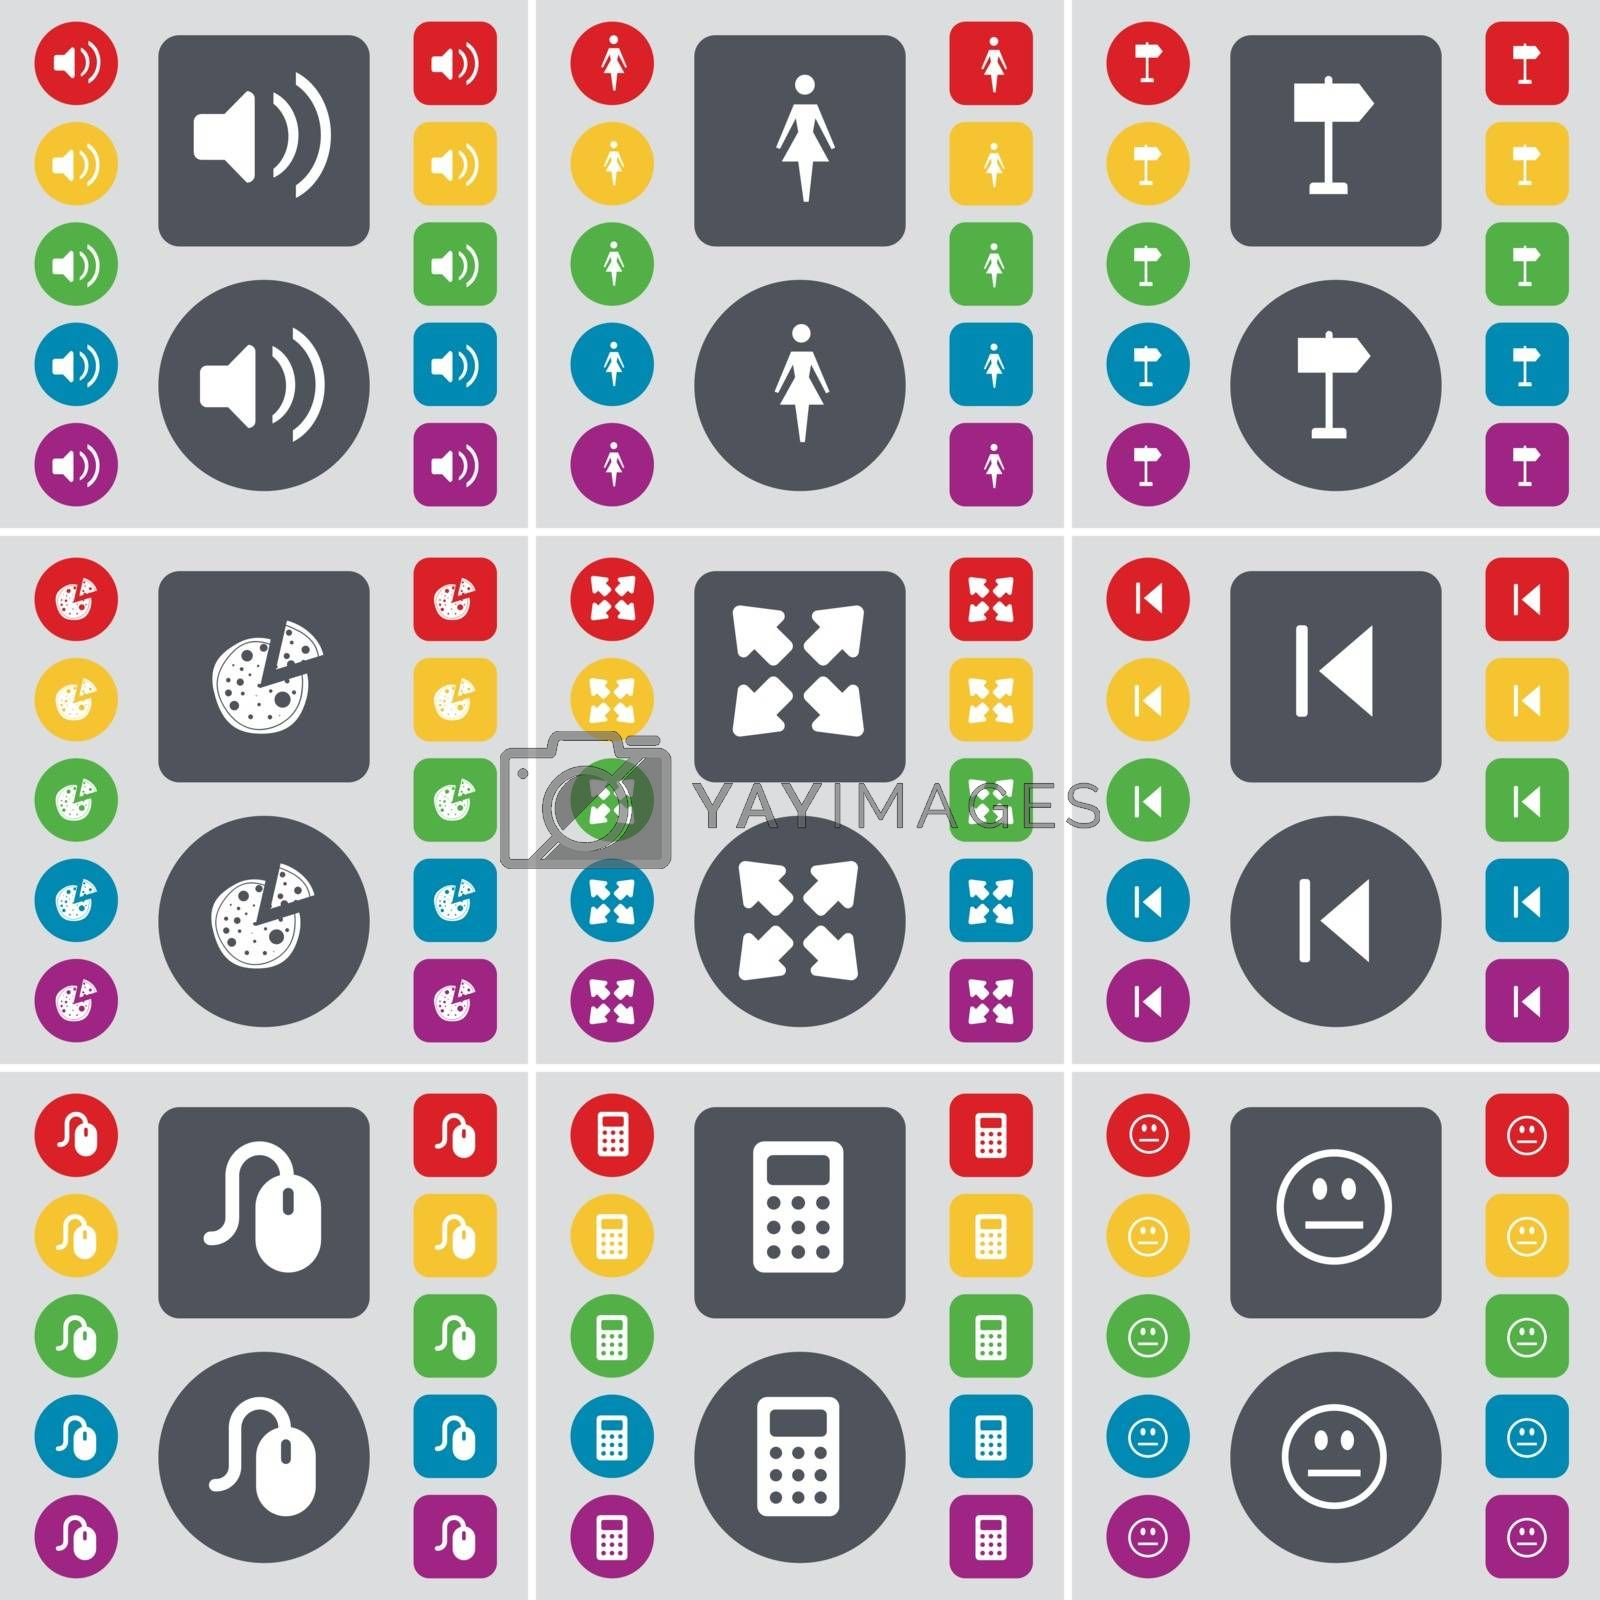 Royalty free image of Sound, Silhouette, Signpost, Pizza, Full screen, Media skip, Mouse, Calendar, Smile icon symbol. A large set of flat, colored buttons for your design. Vector by serhii_lohvyniuk